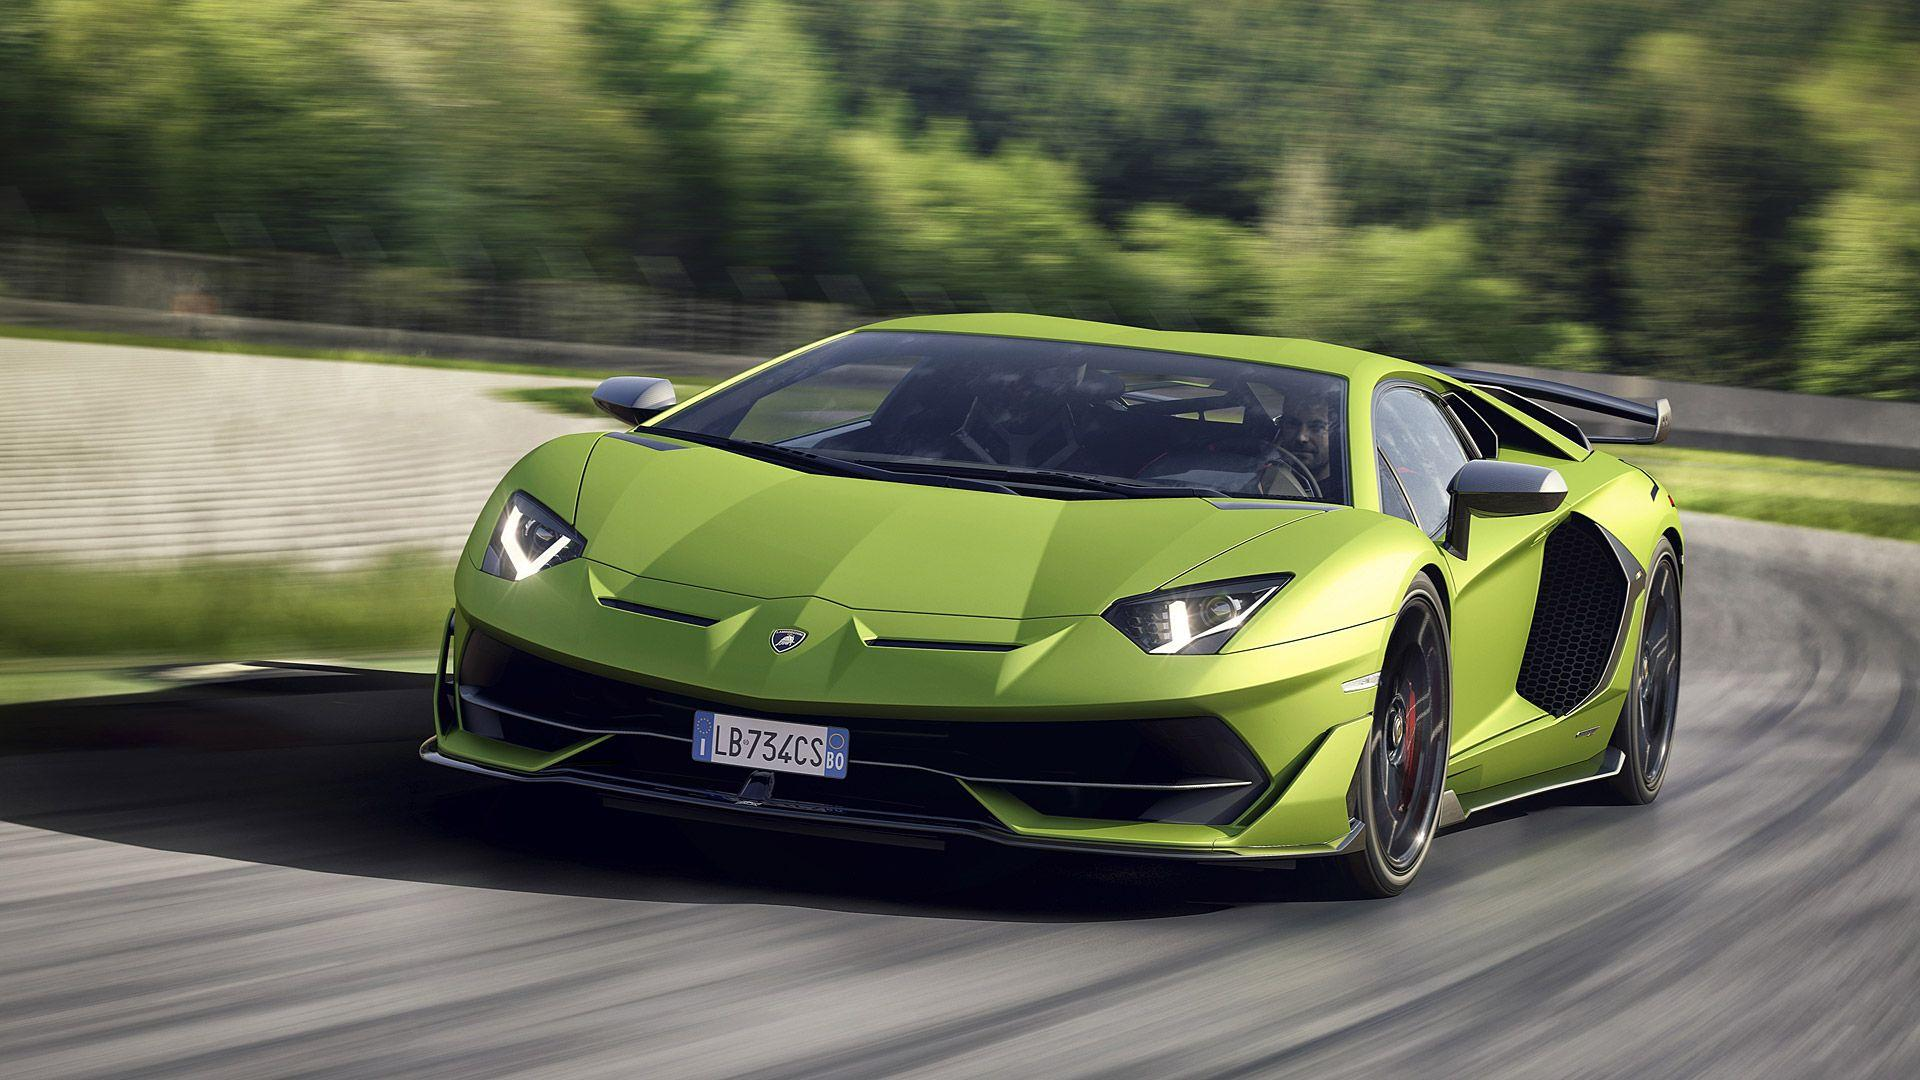 Read on to learn more on the lamborghini aventador j in this future v. Lamborghini Aventador Wallpapers Wallpaper Cave